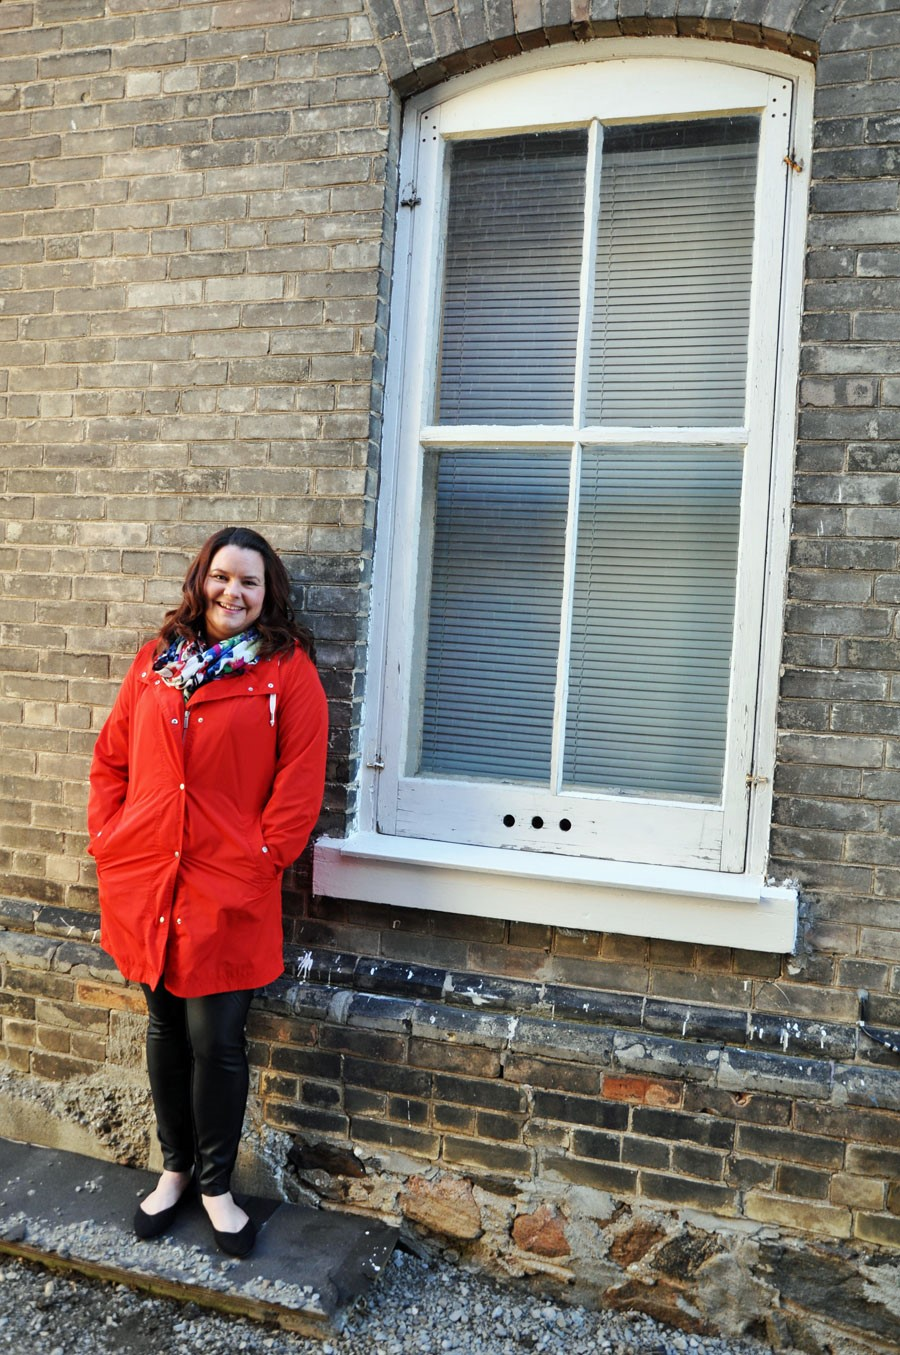 woman in red jacket leans against grey brick wall, big white window beside her